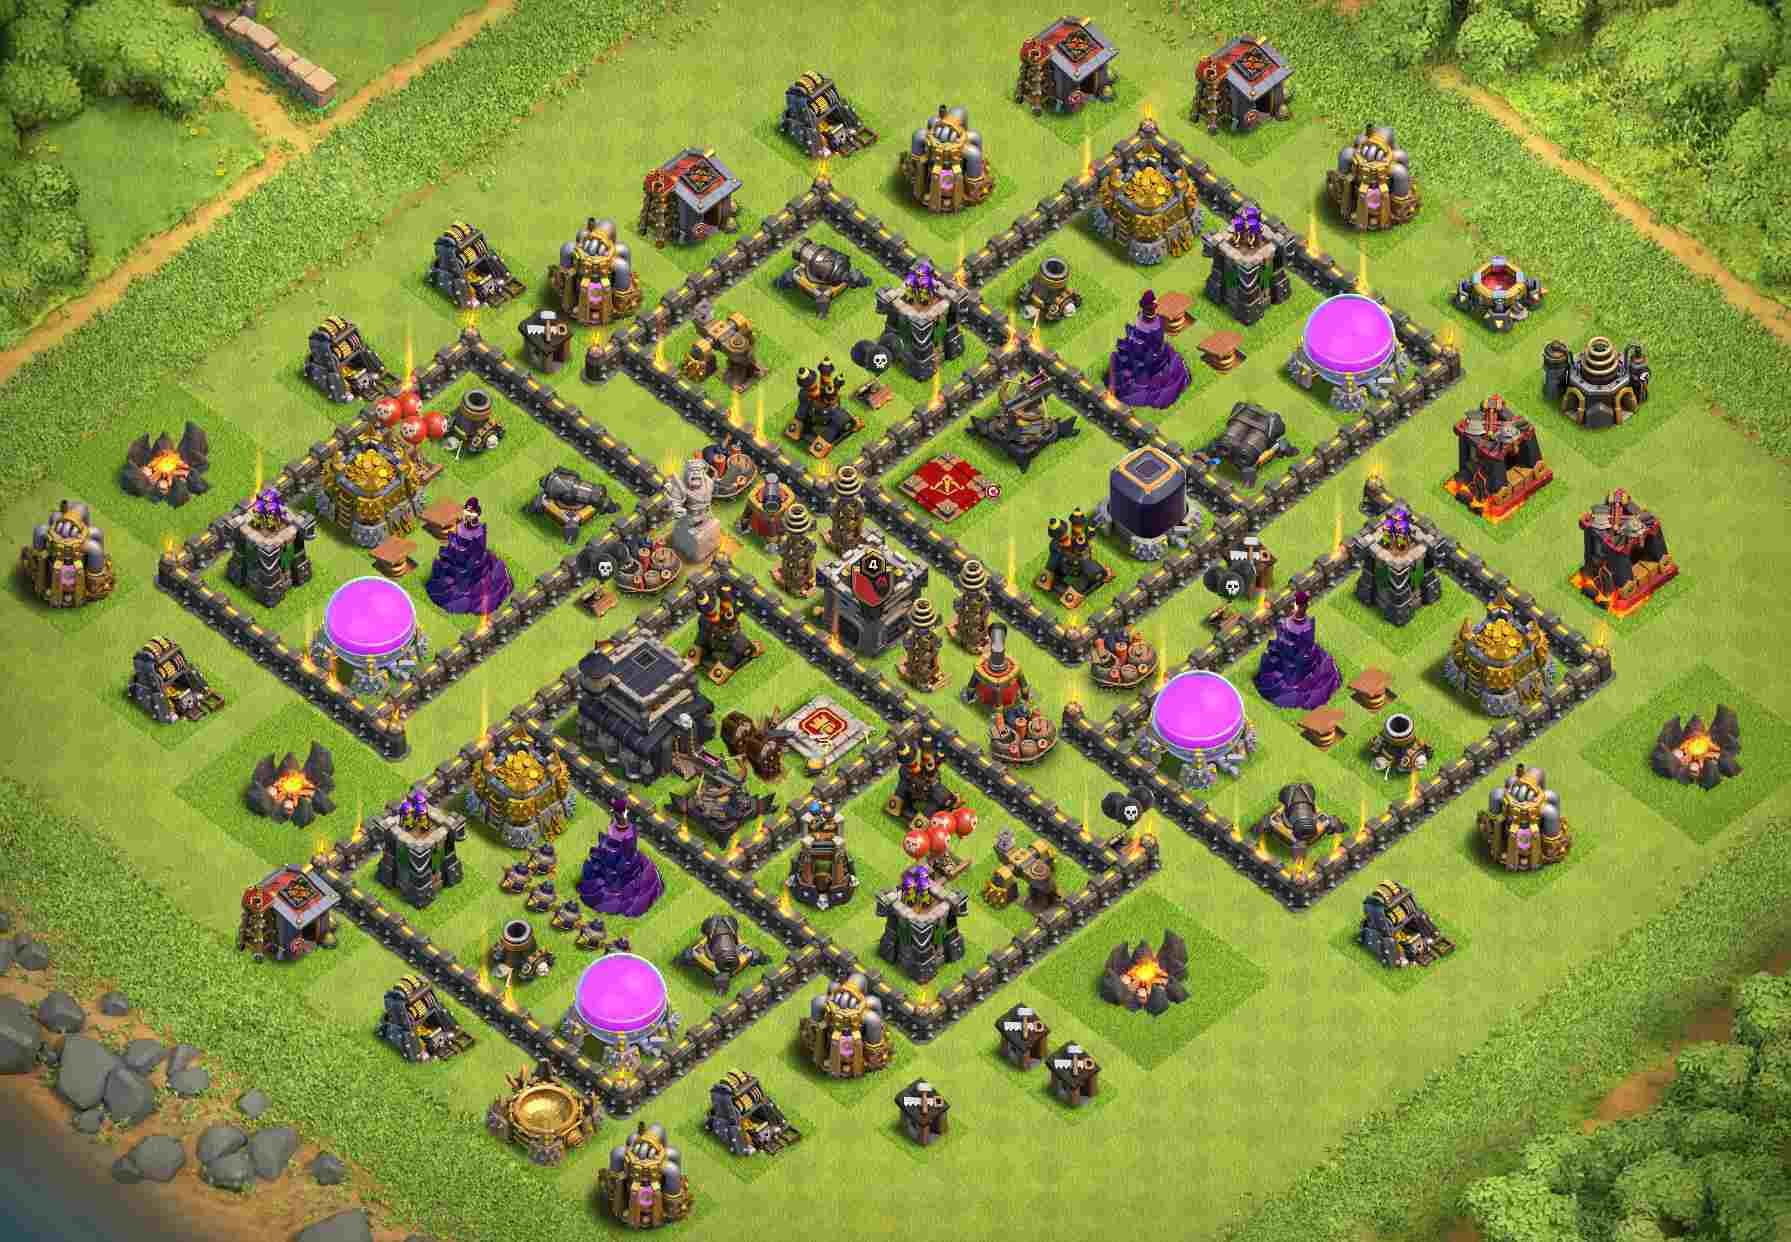 Coc hack tool download for android pc